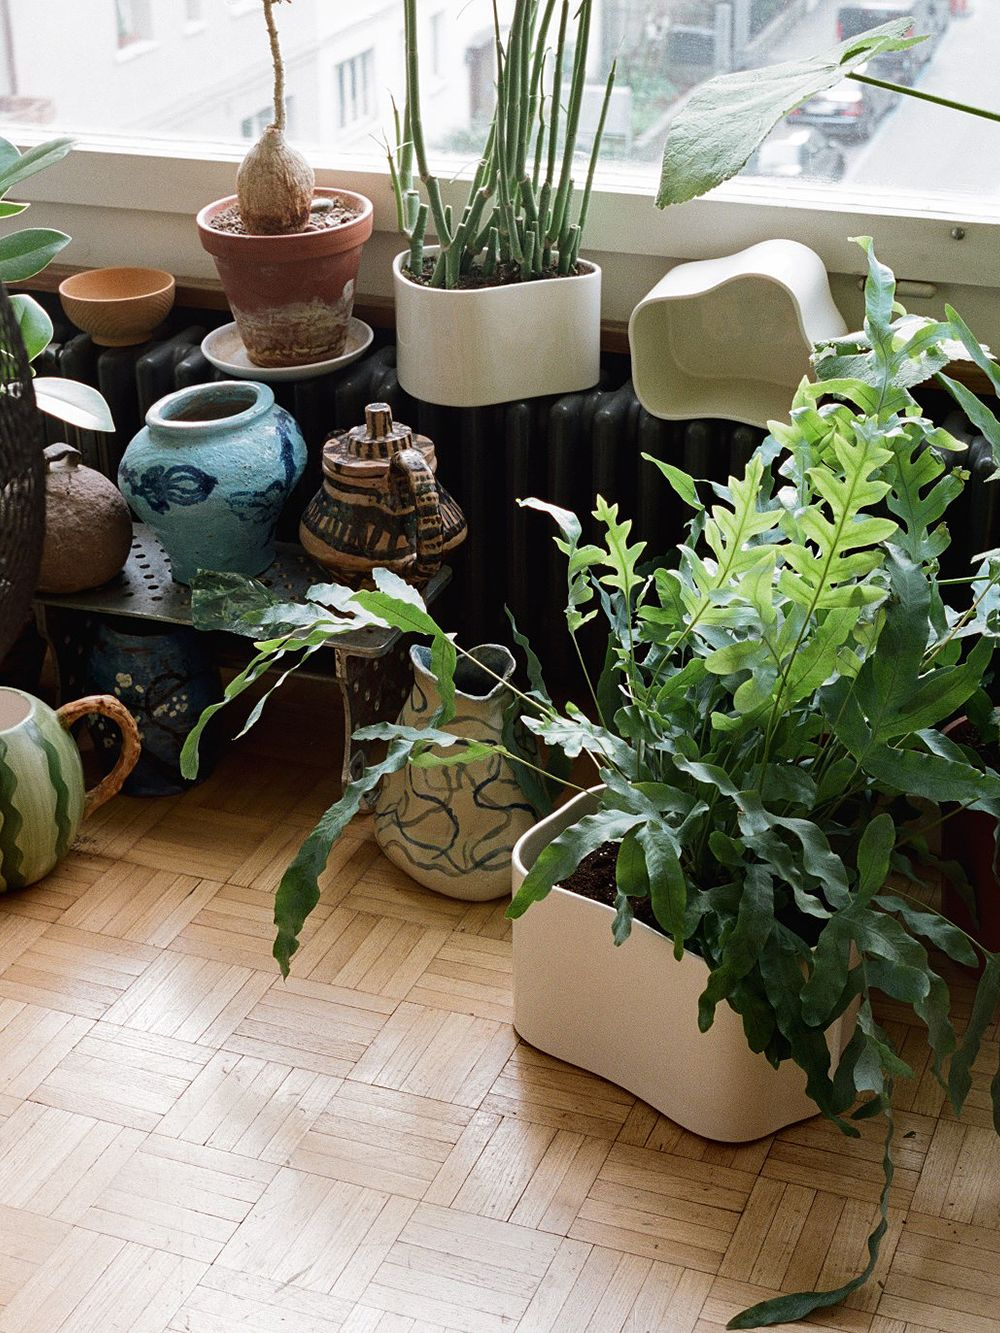 A combination of Artek's Riihitie pots and miscellaneous ceramic items.